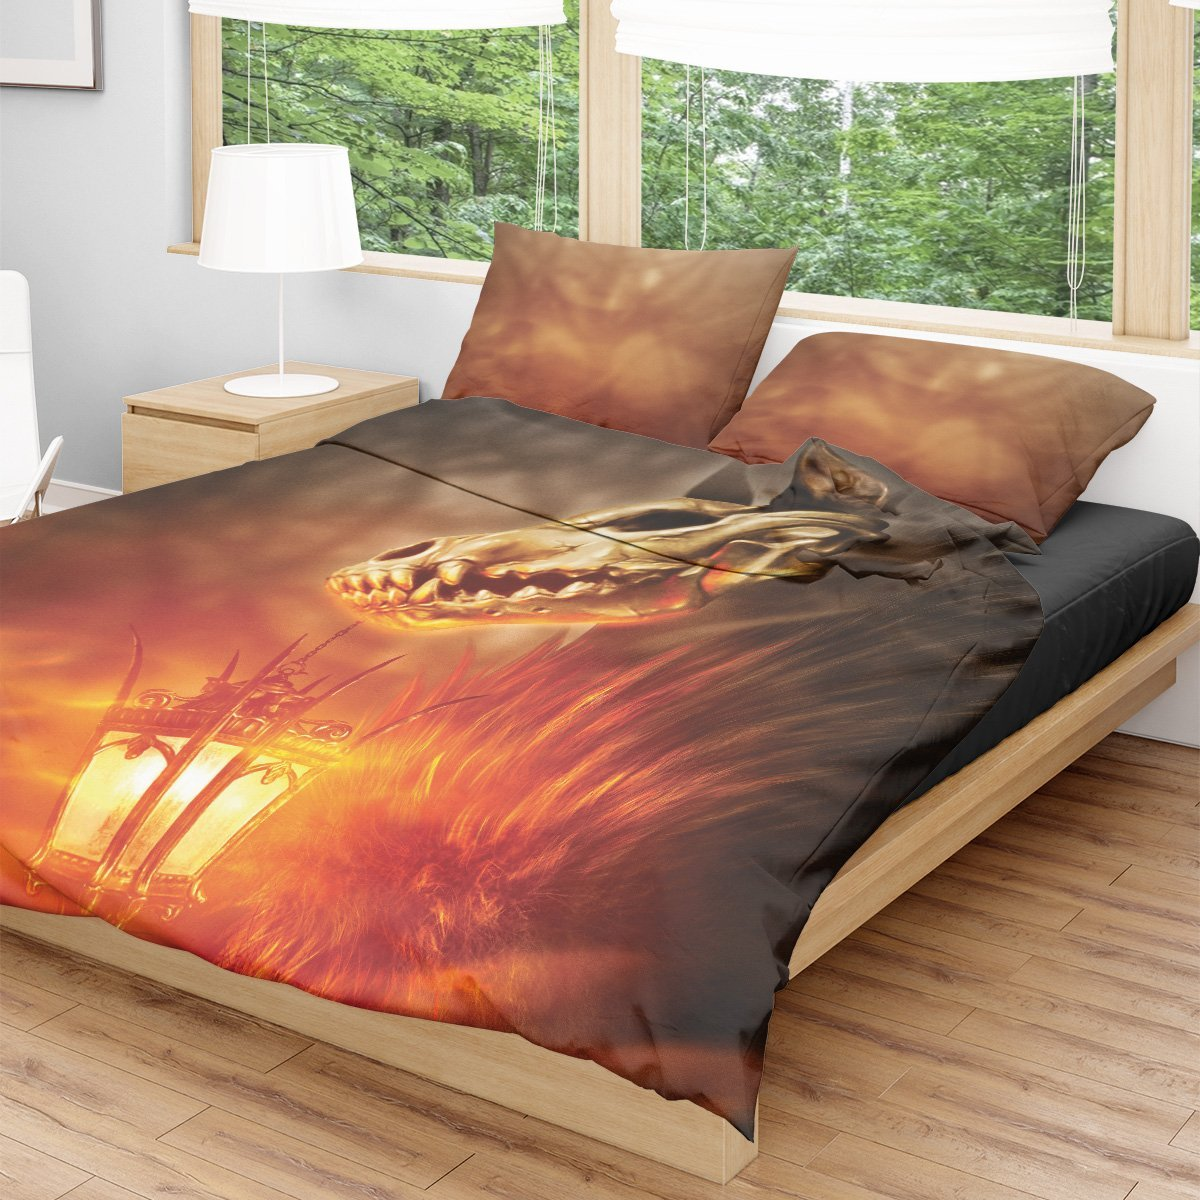 Ignis Fatuus Bedding Set Beddings